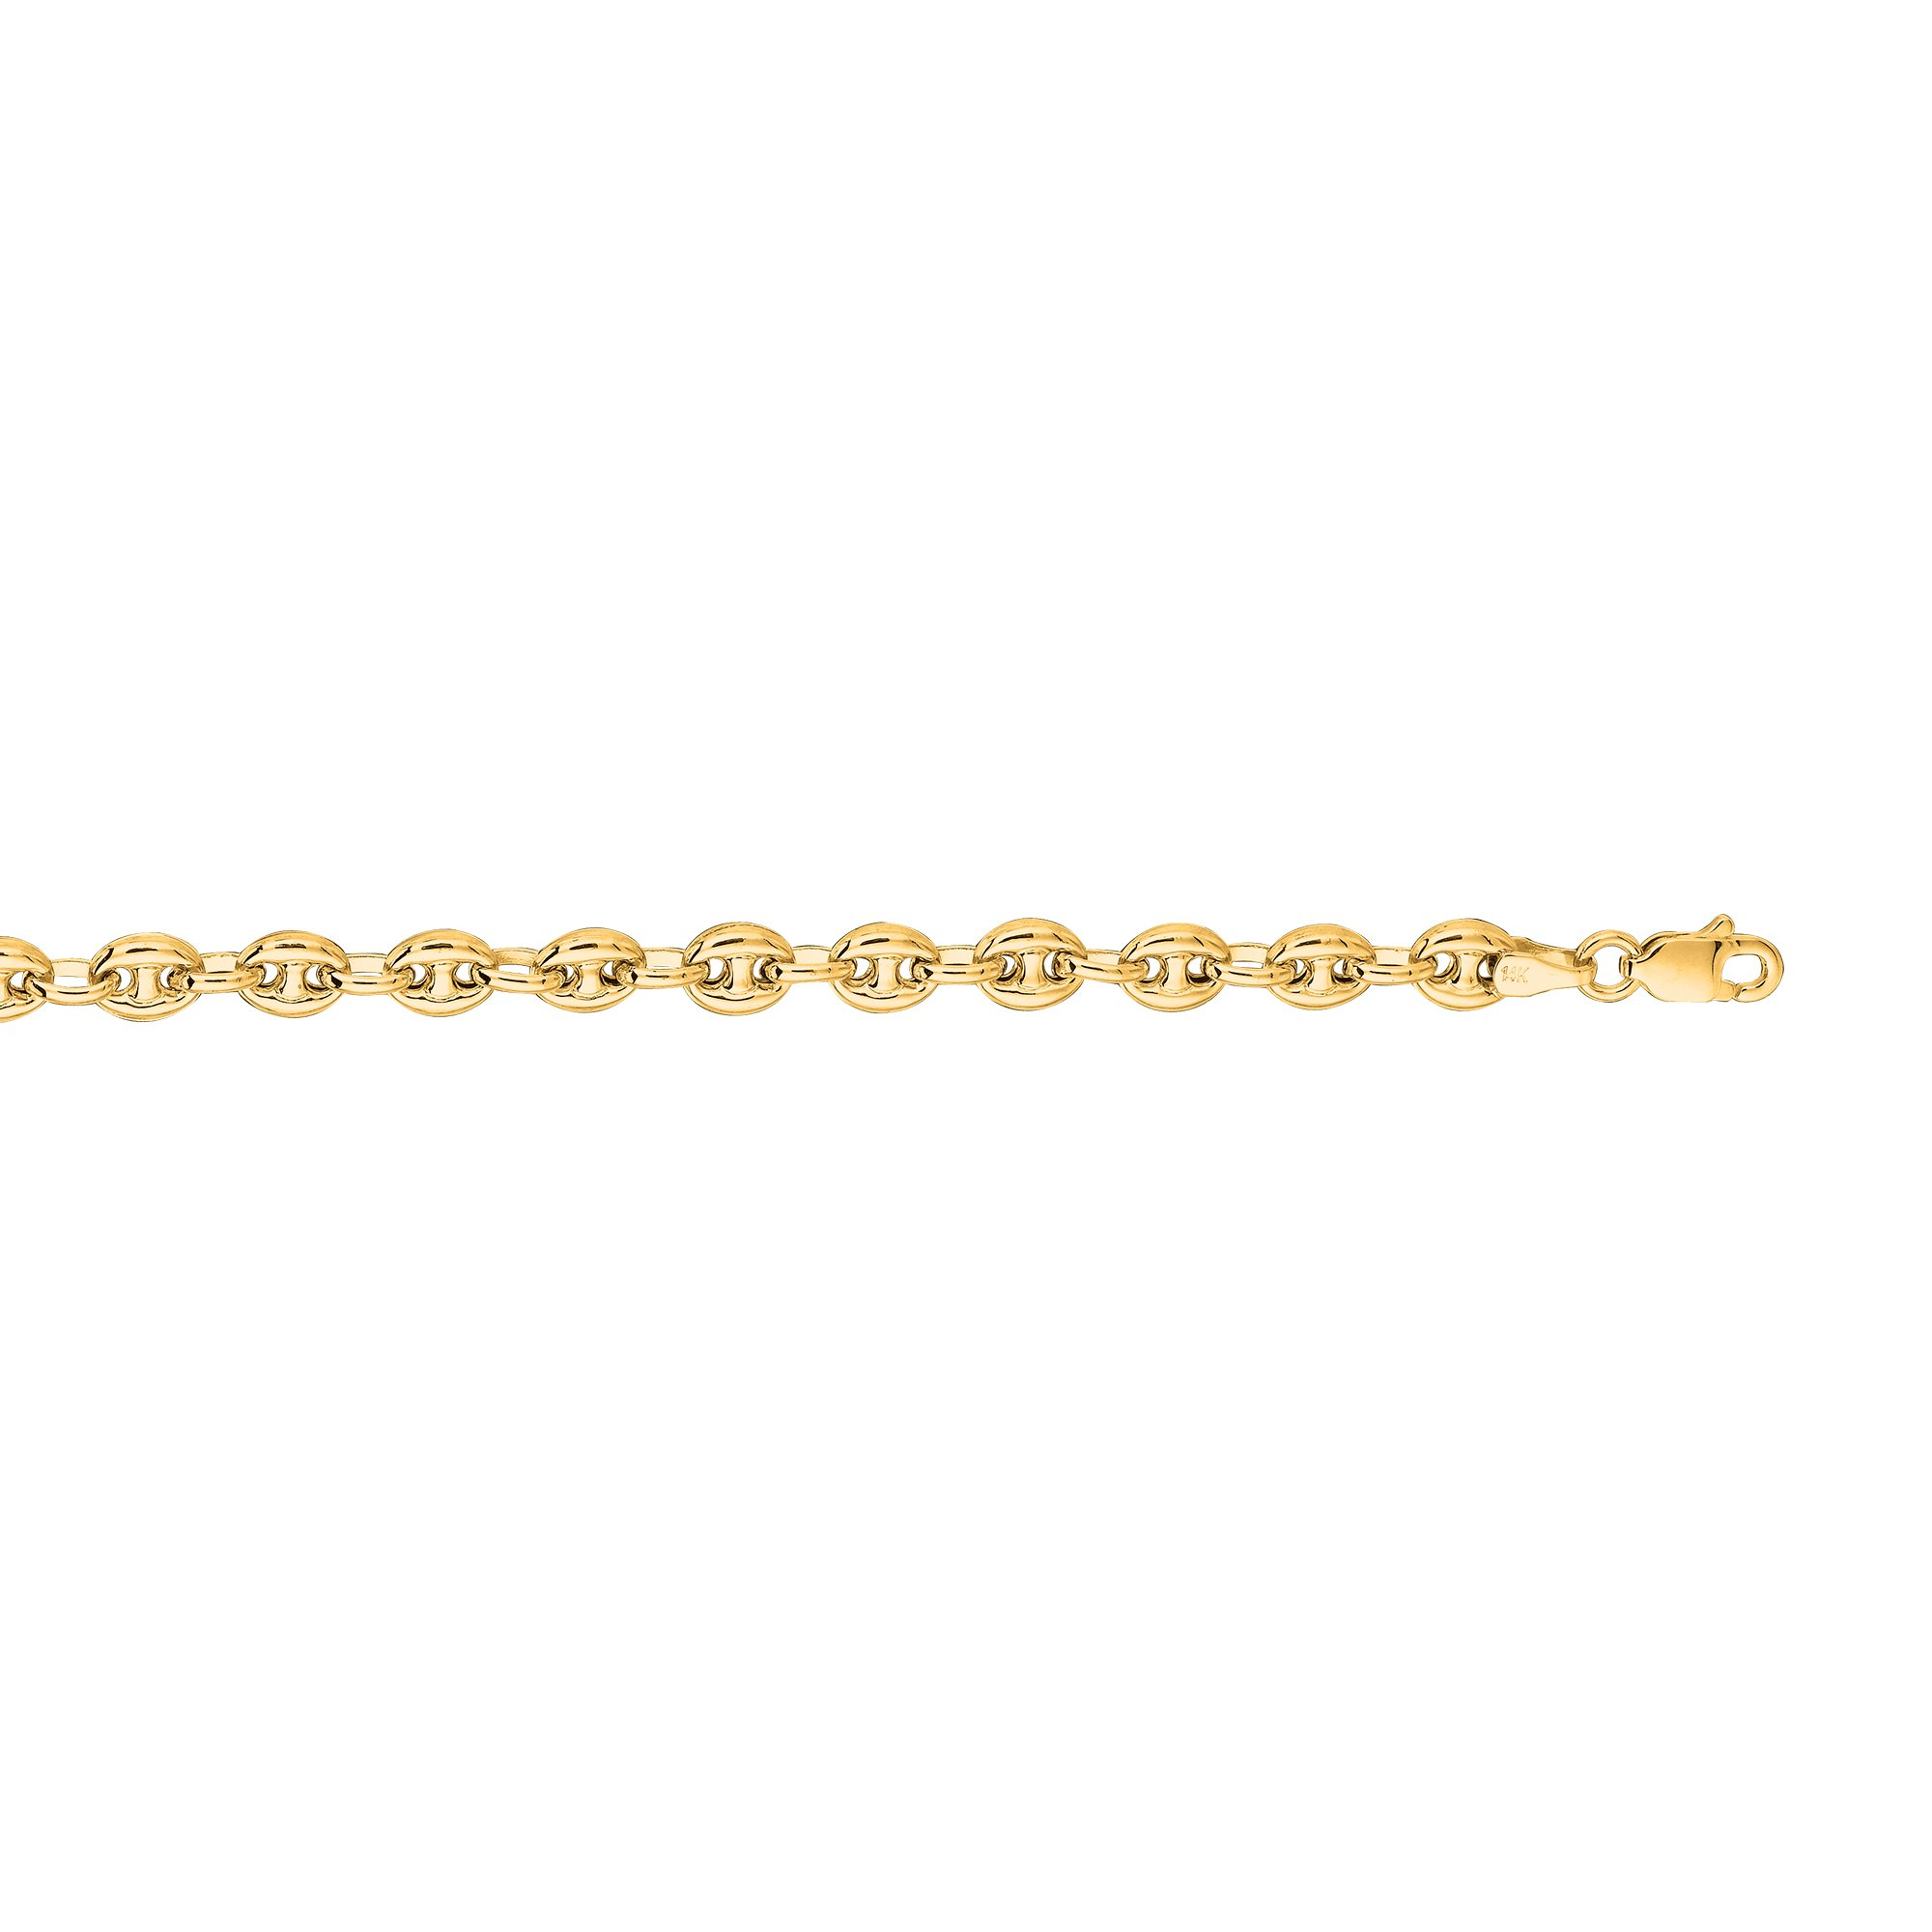 IcedTime 14K Yellow Gold 4.5mm wide Diamond Cut Puffed Mariner Link Chain 10'' Anklet Lobster Clasp